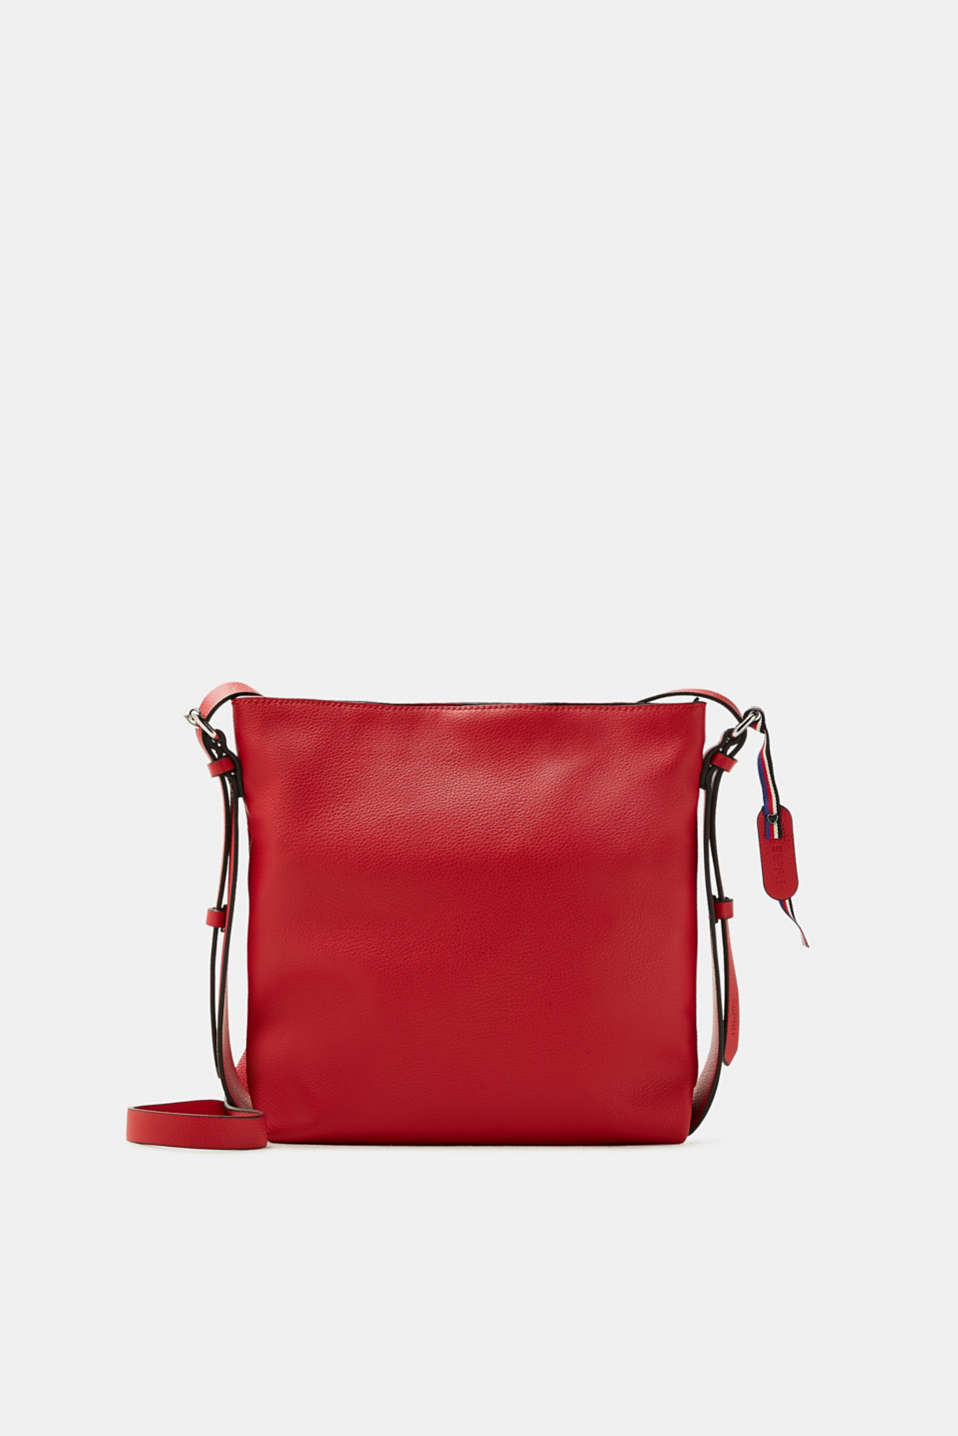 Esprit - Sleek faux leather shoulder bag